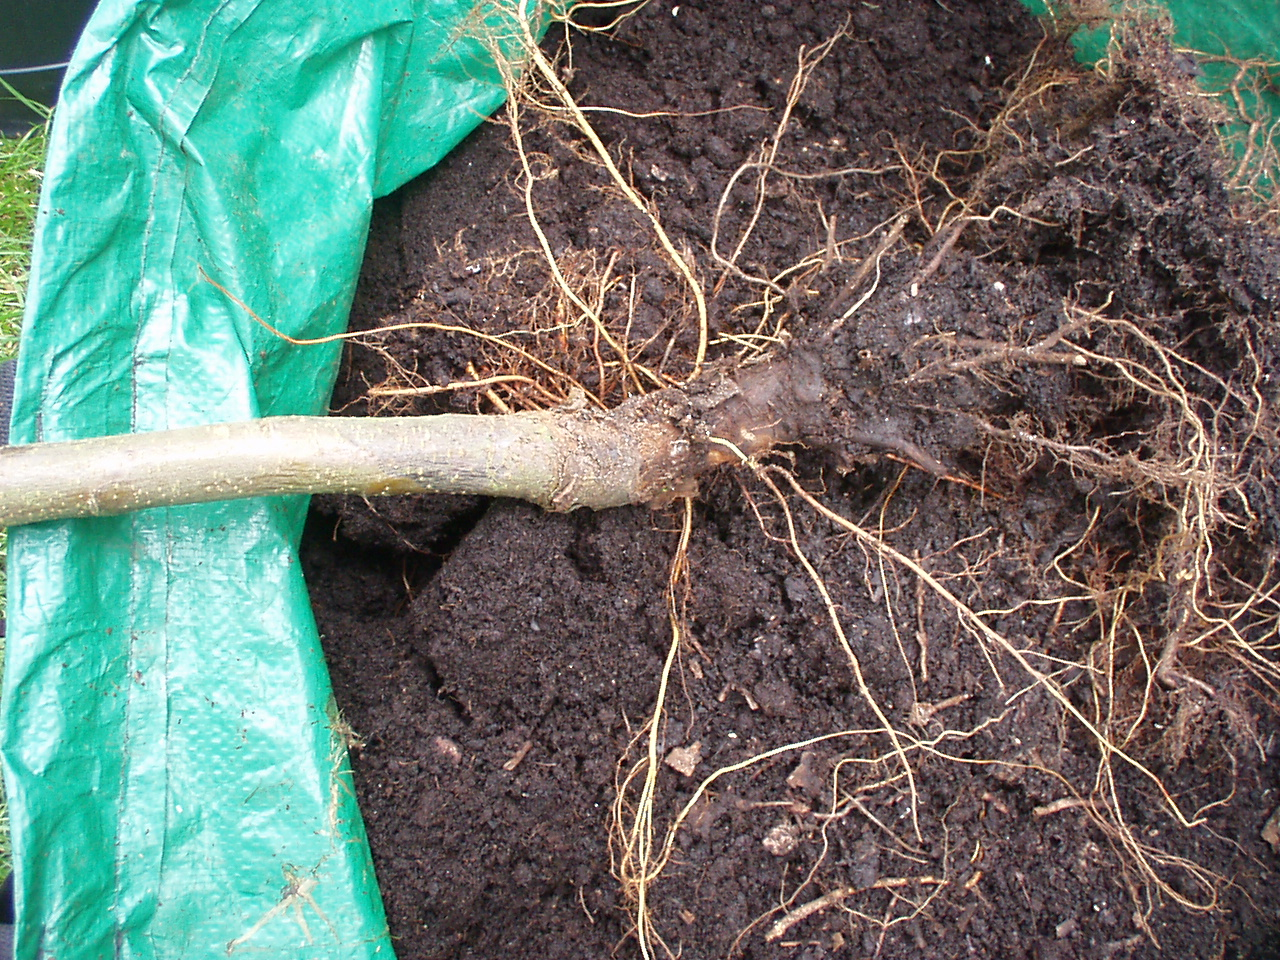 Image of Phytophthora root rot